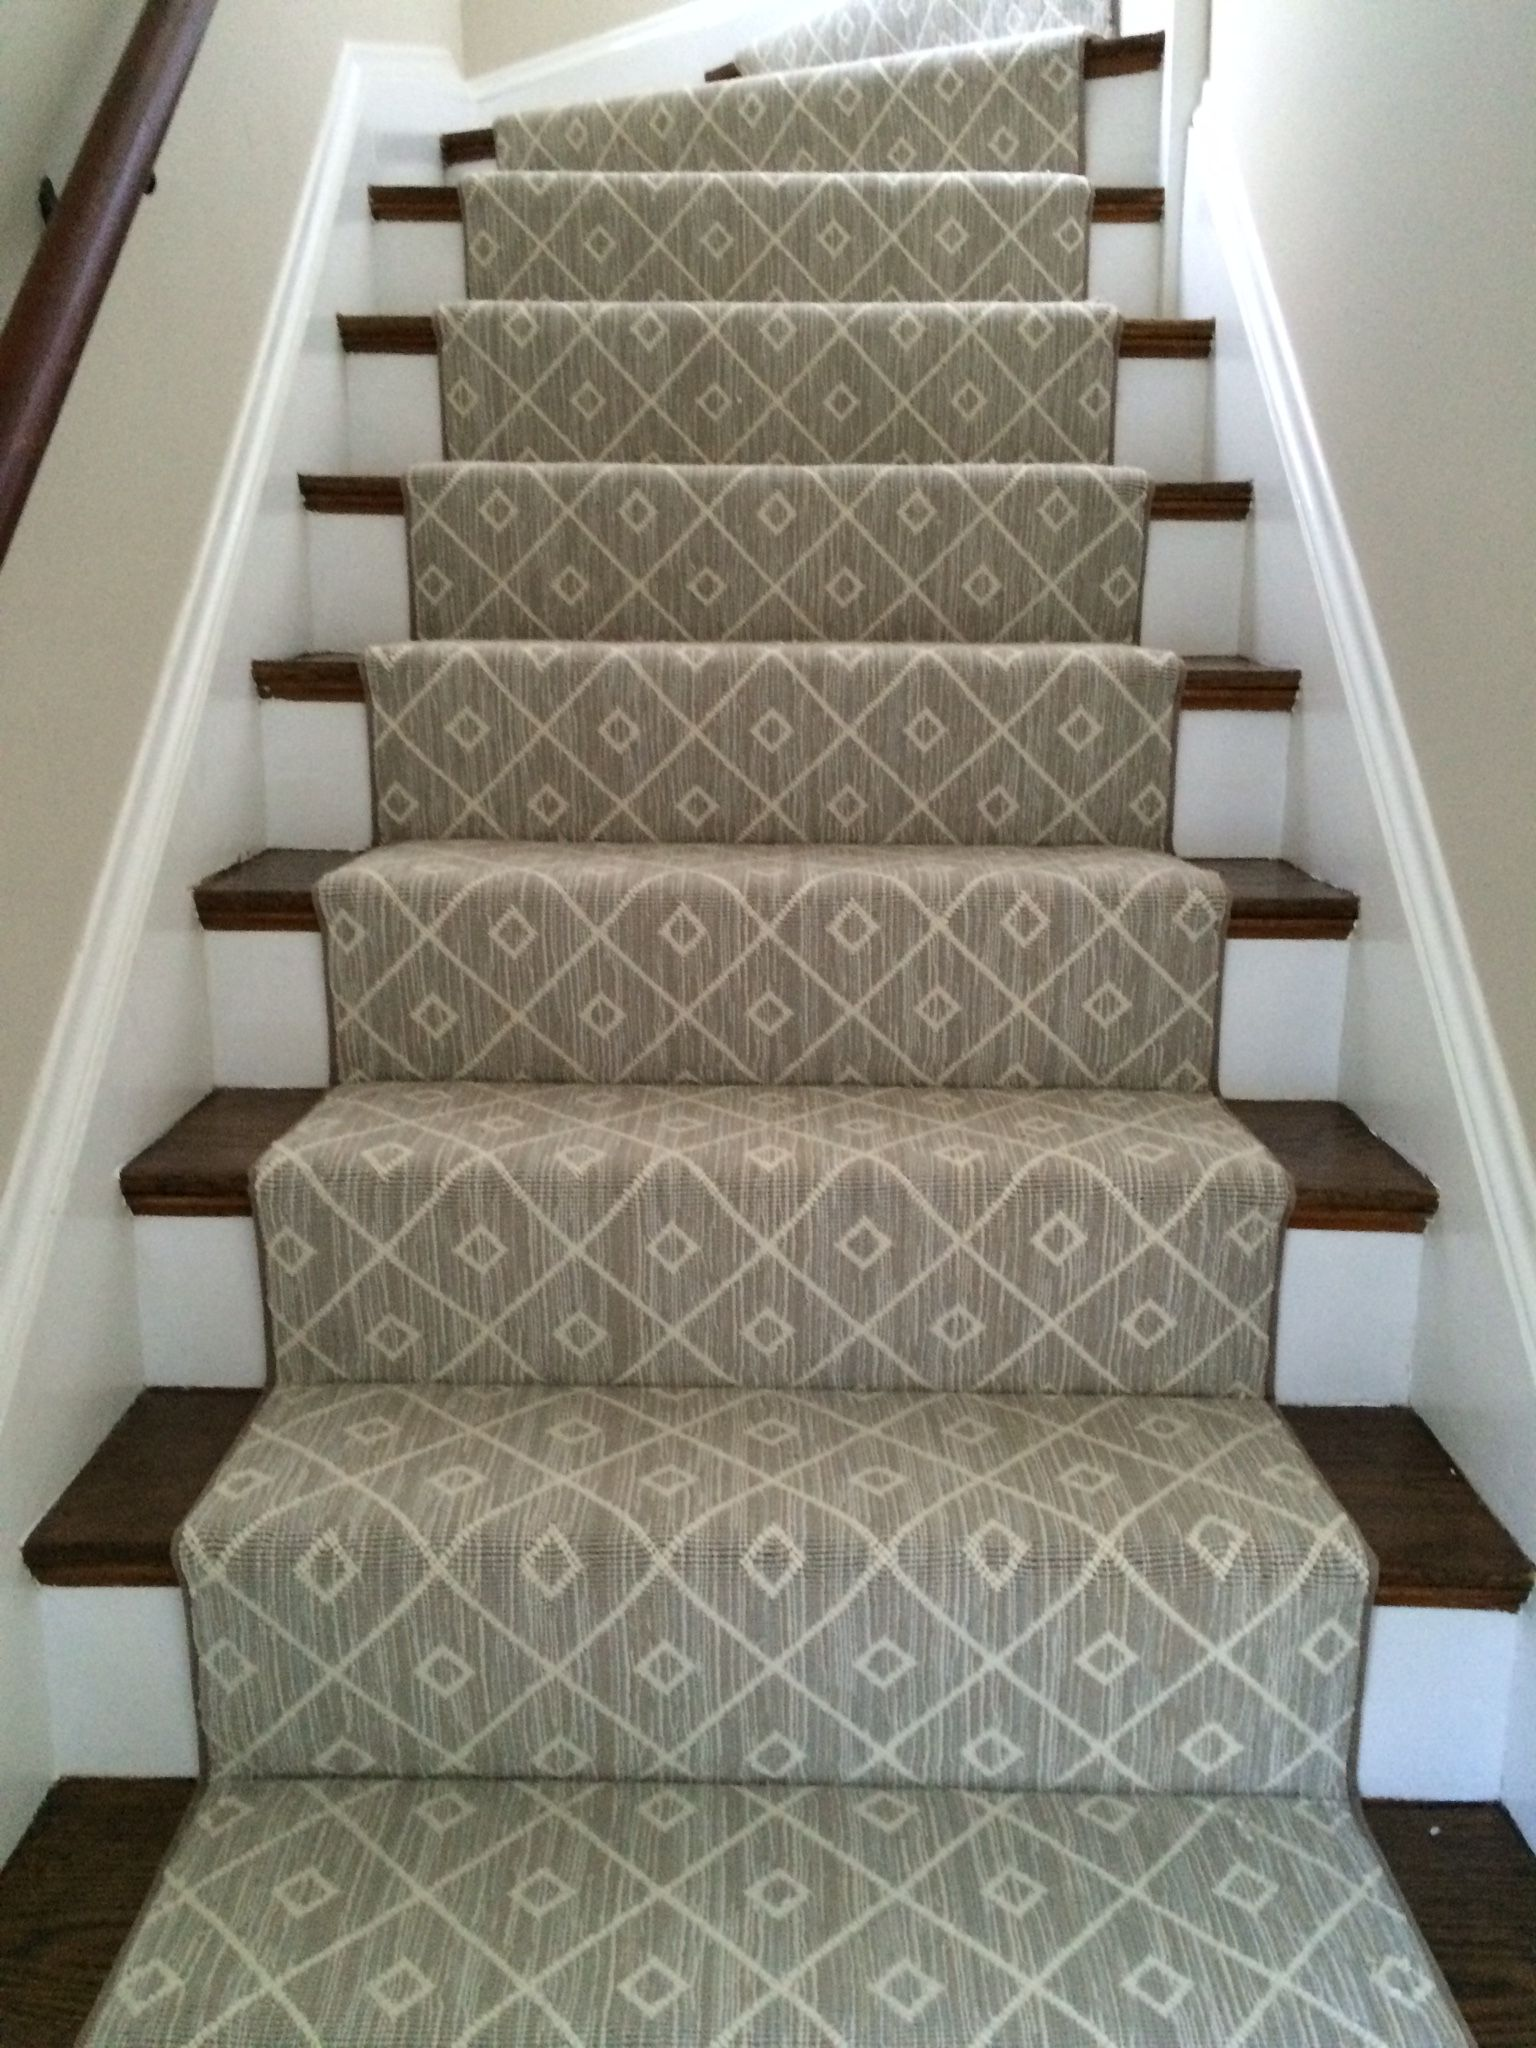 Carpet Stair Runner Over Carpet Patterned Stair Carpet